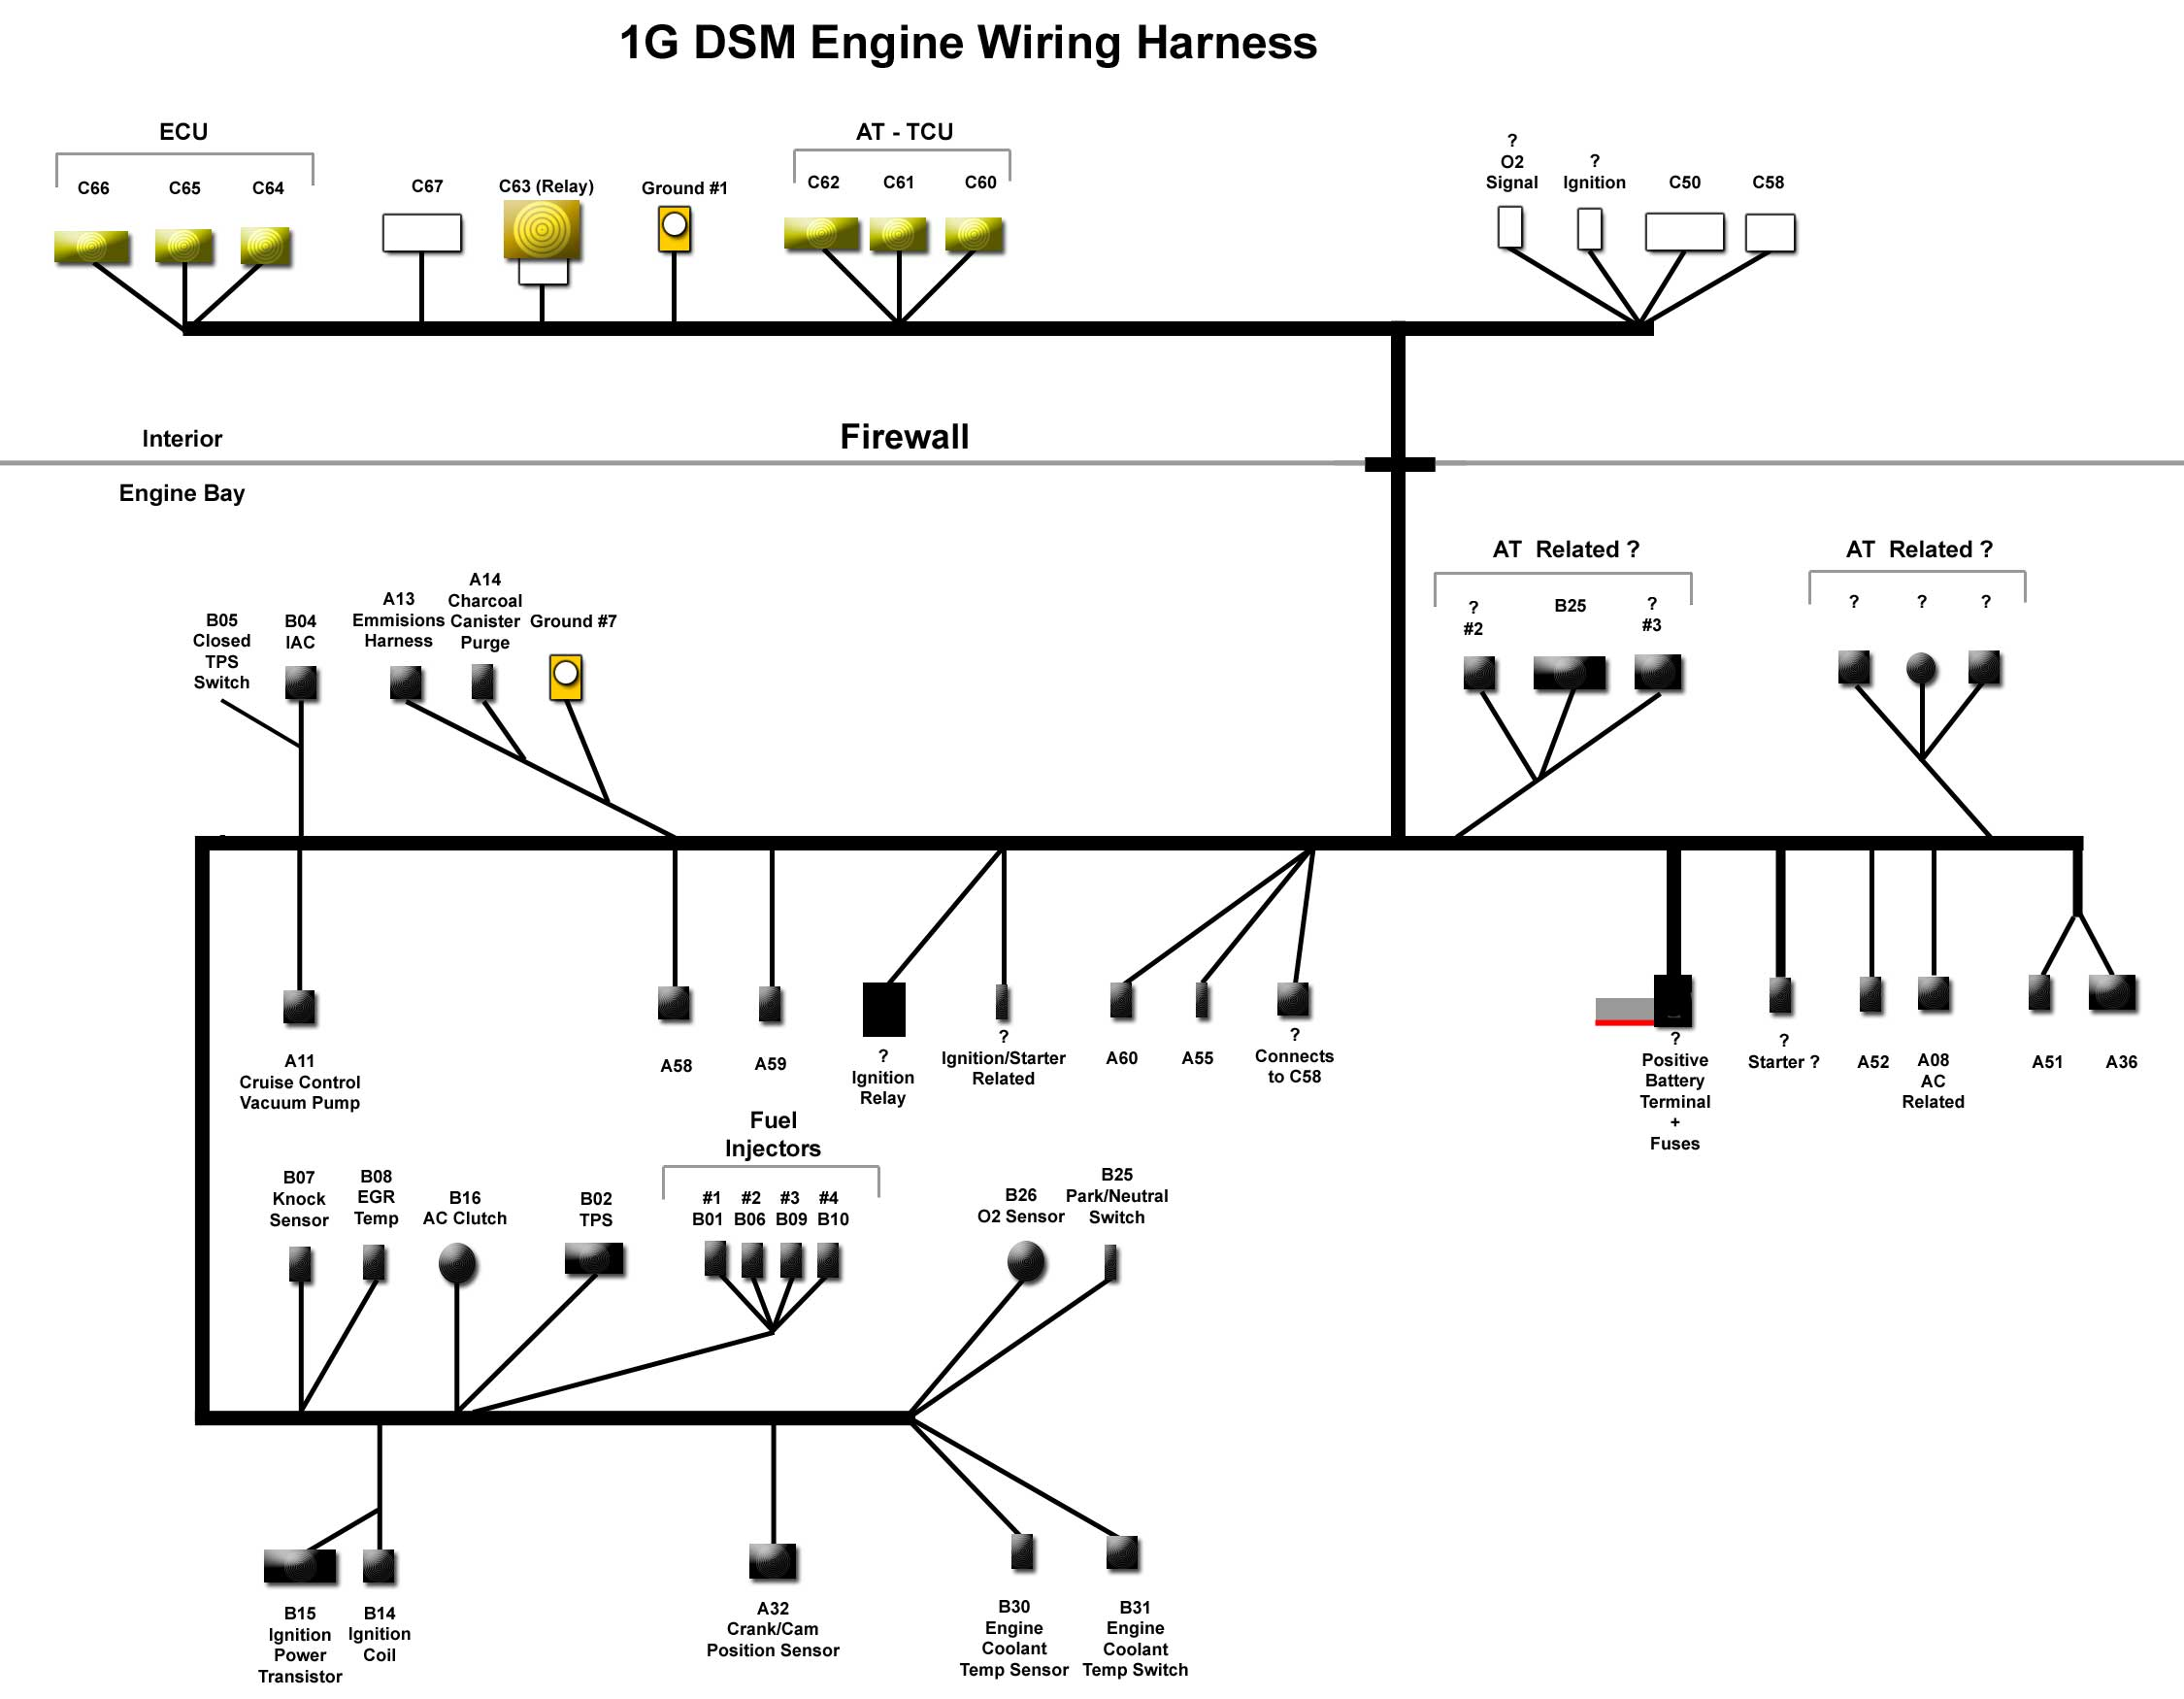 1G DSM EngineHarness 1gb dsm 4g63 turbo wiring harness diagram dsm wiring harness at money-cpm.com